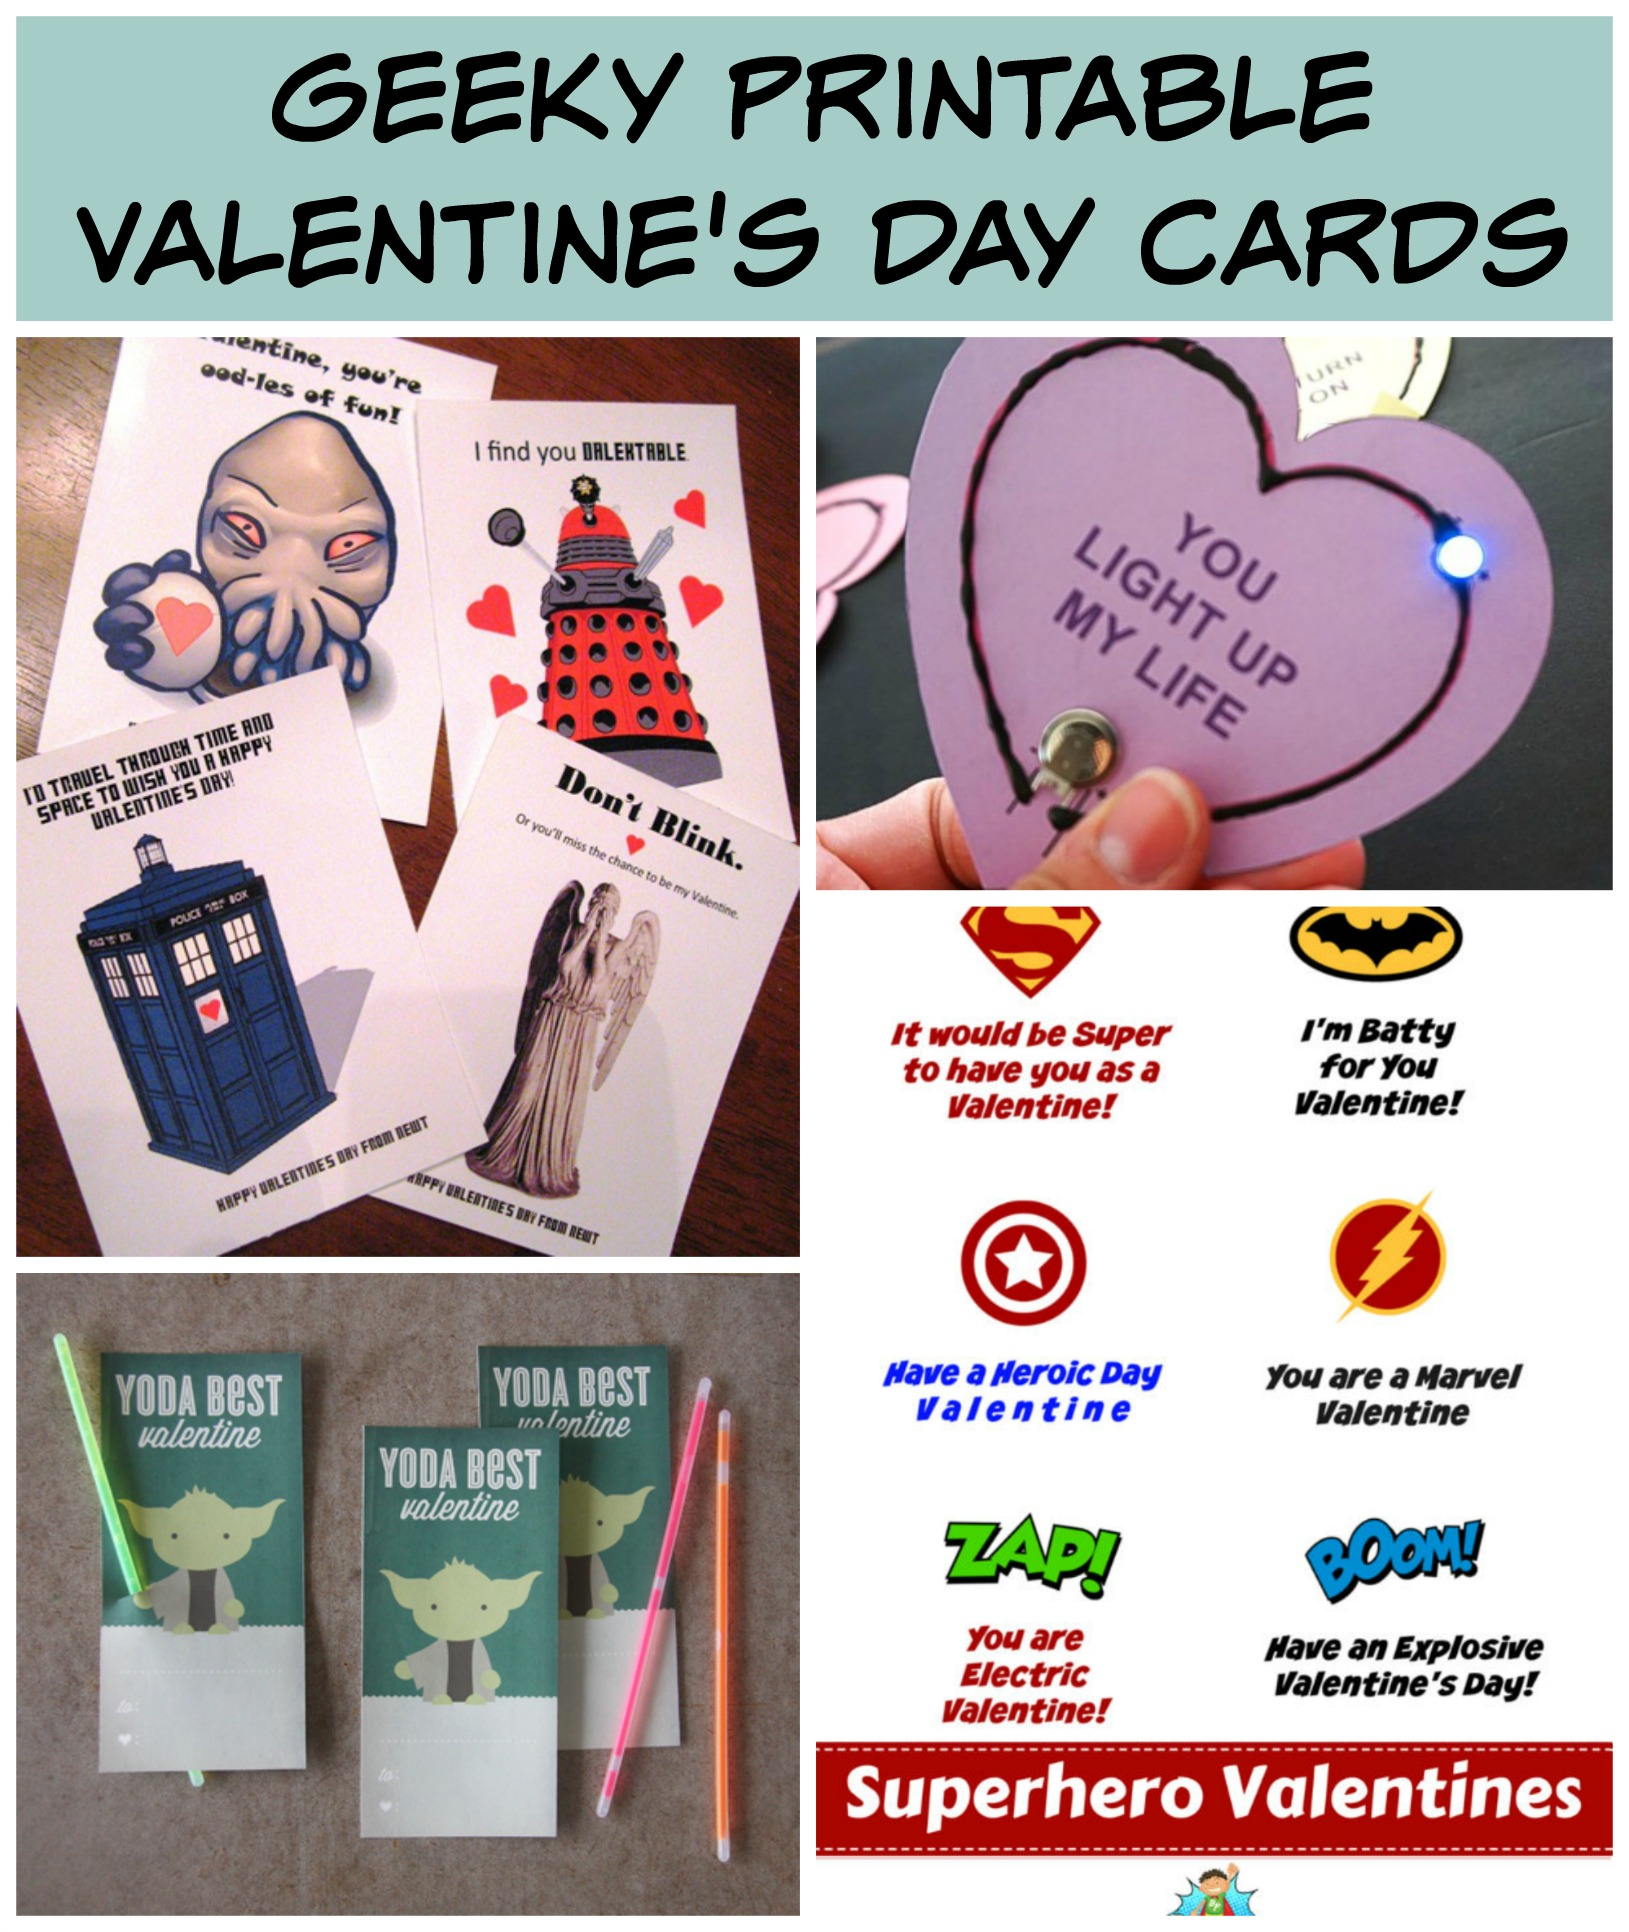 Free Printables for Geeky Valentines Day Cards  Nerd Family